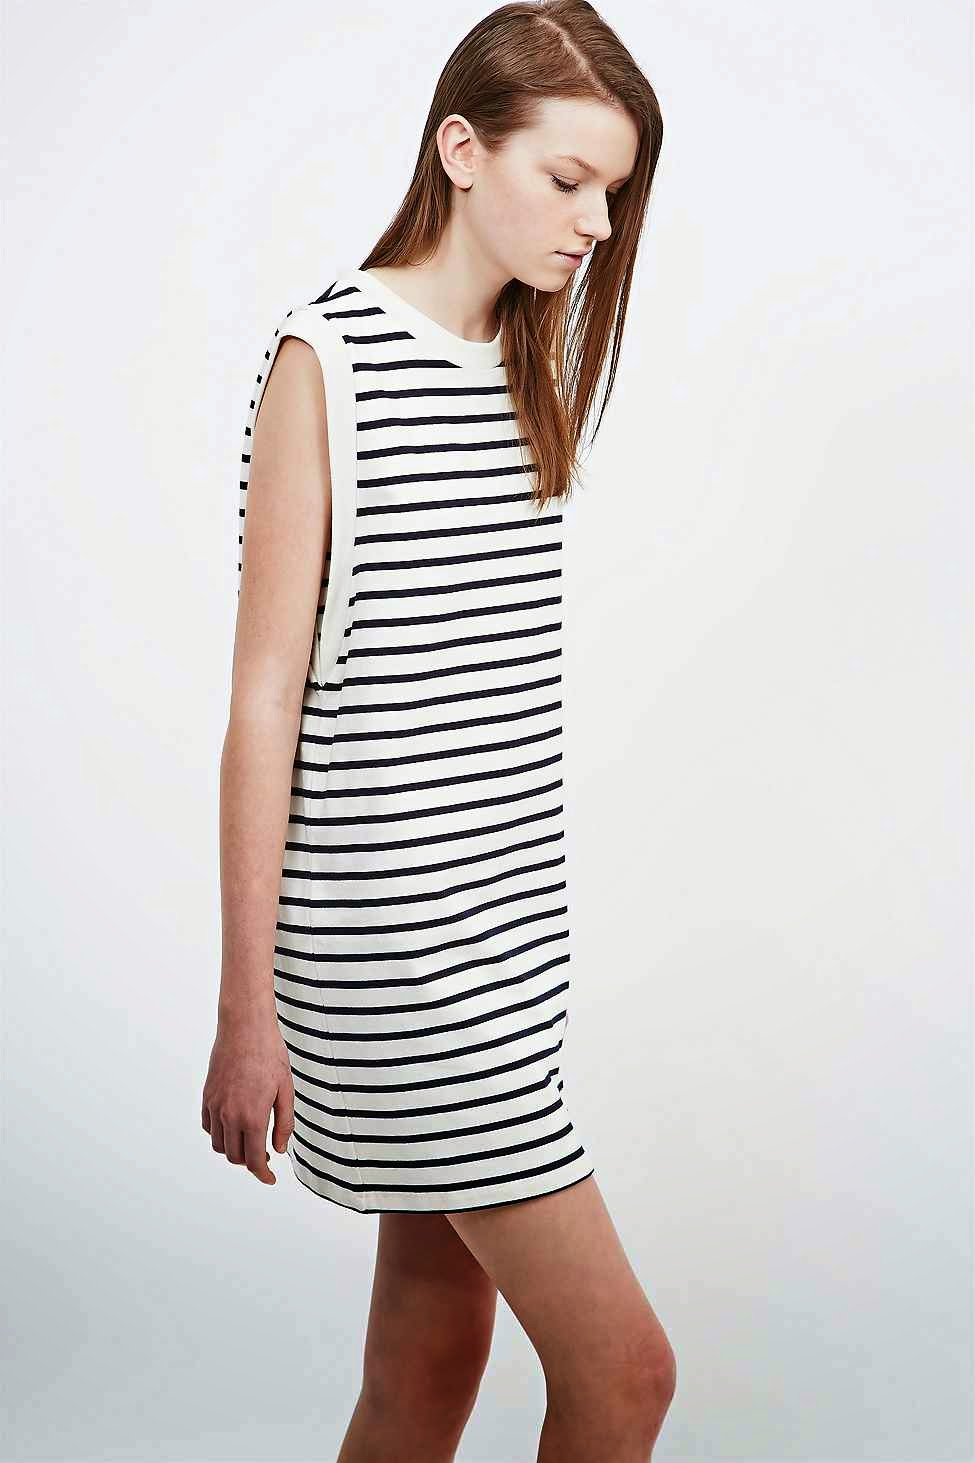 petit bateau striped dress woman